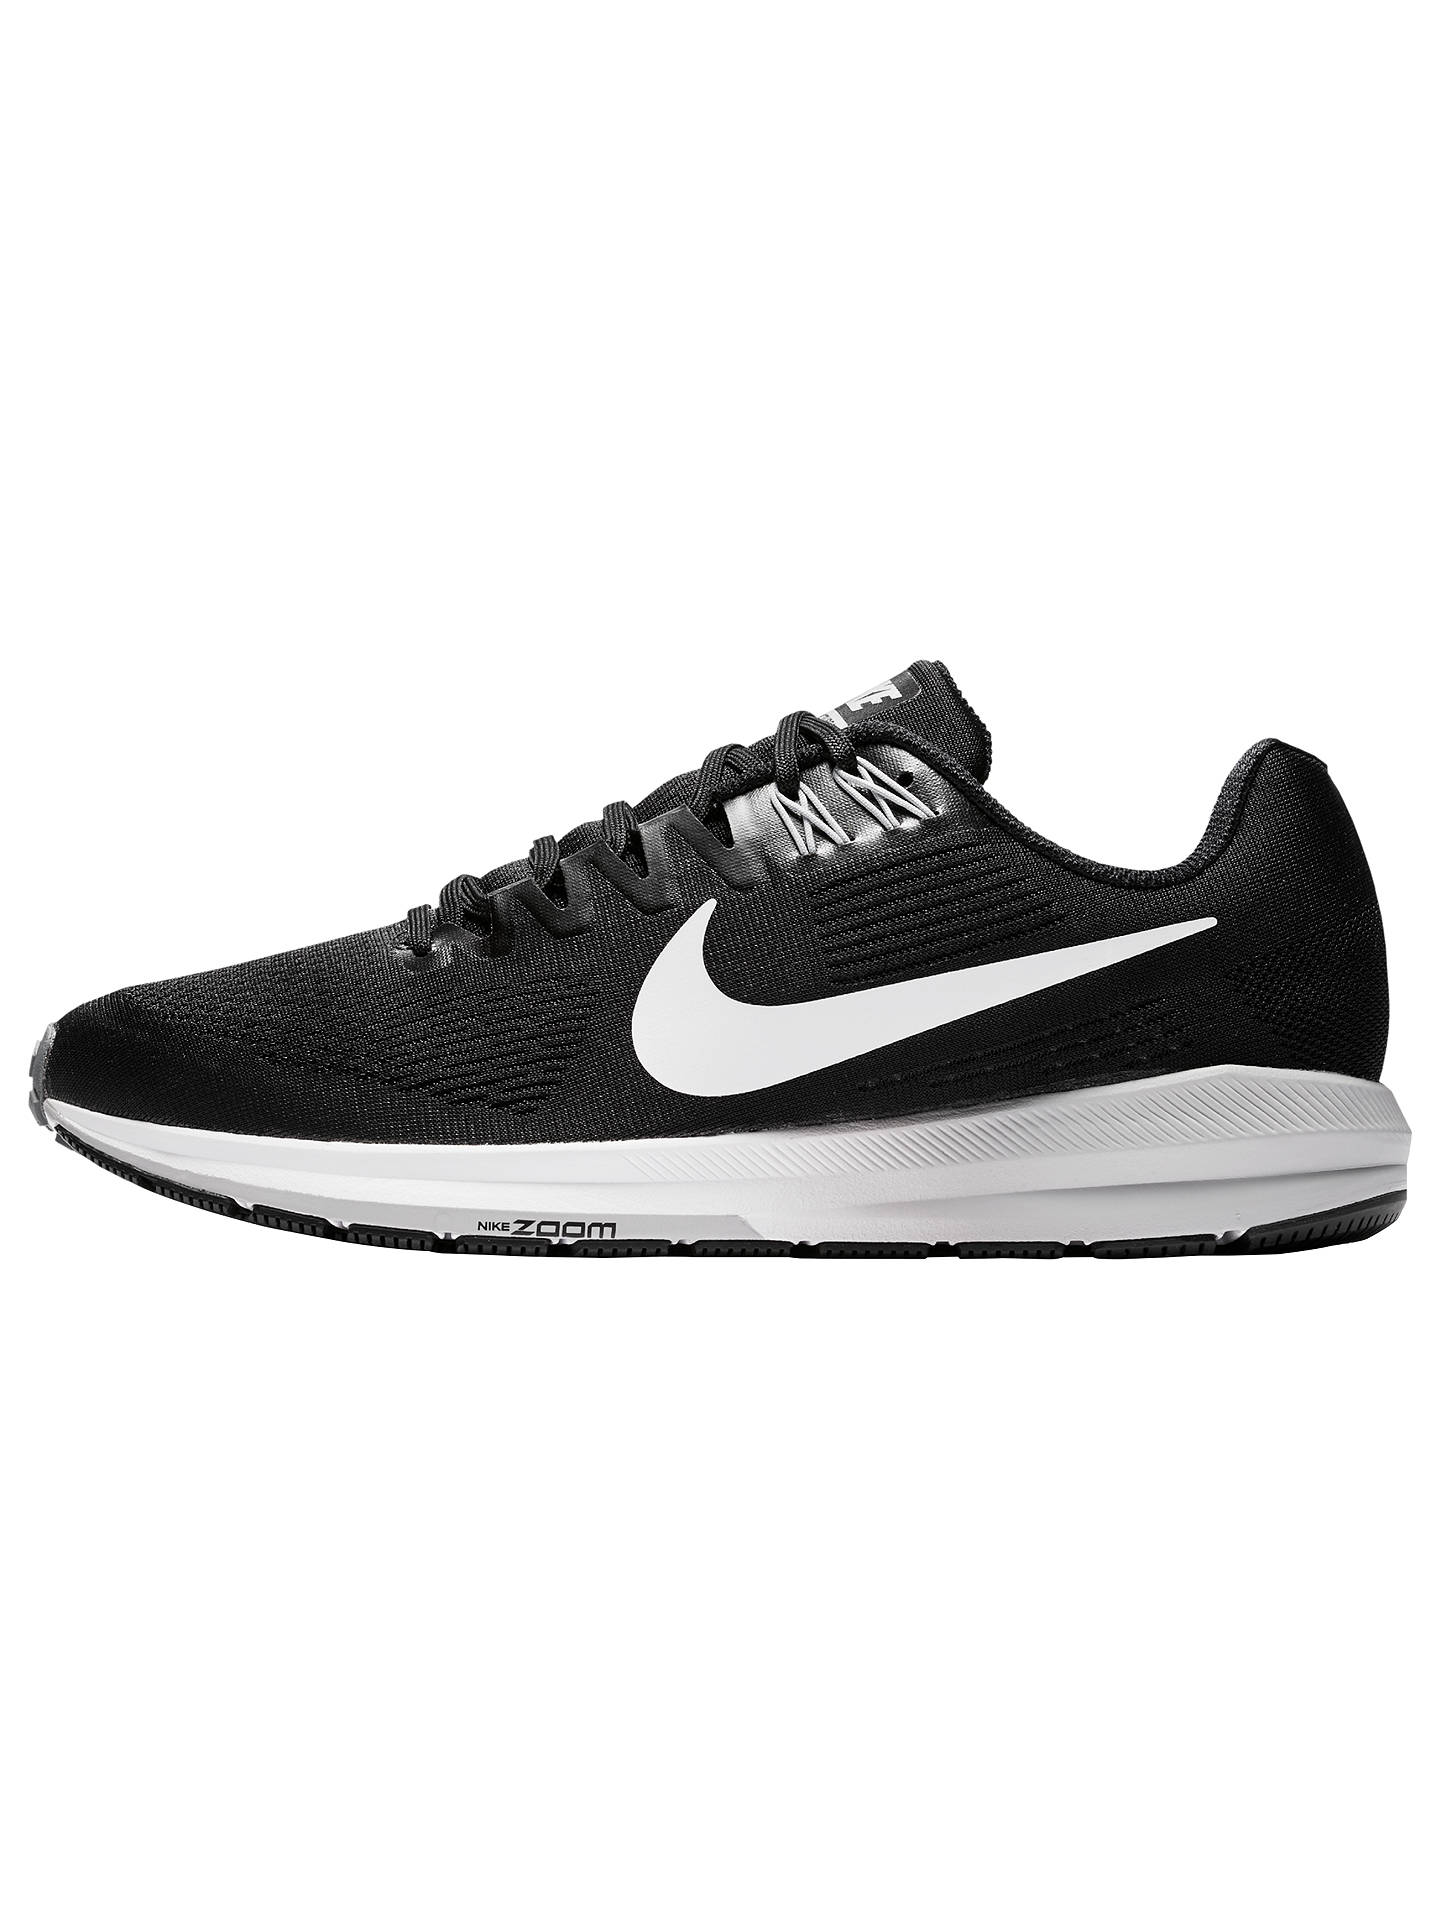 0074c0a46e62 ... Buy Nike Air Zoom Structure 21 Men s Running Shoes